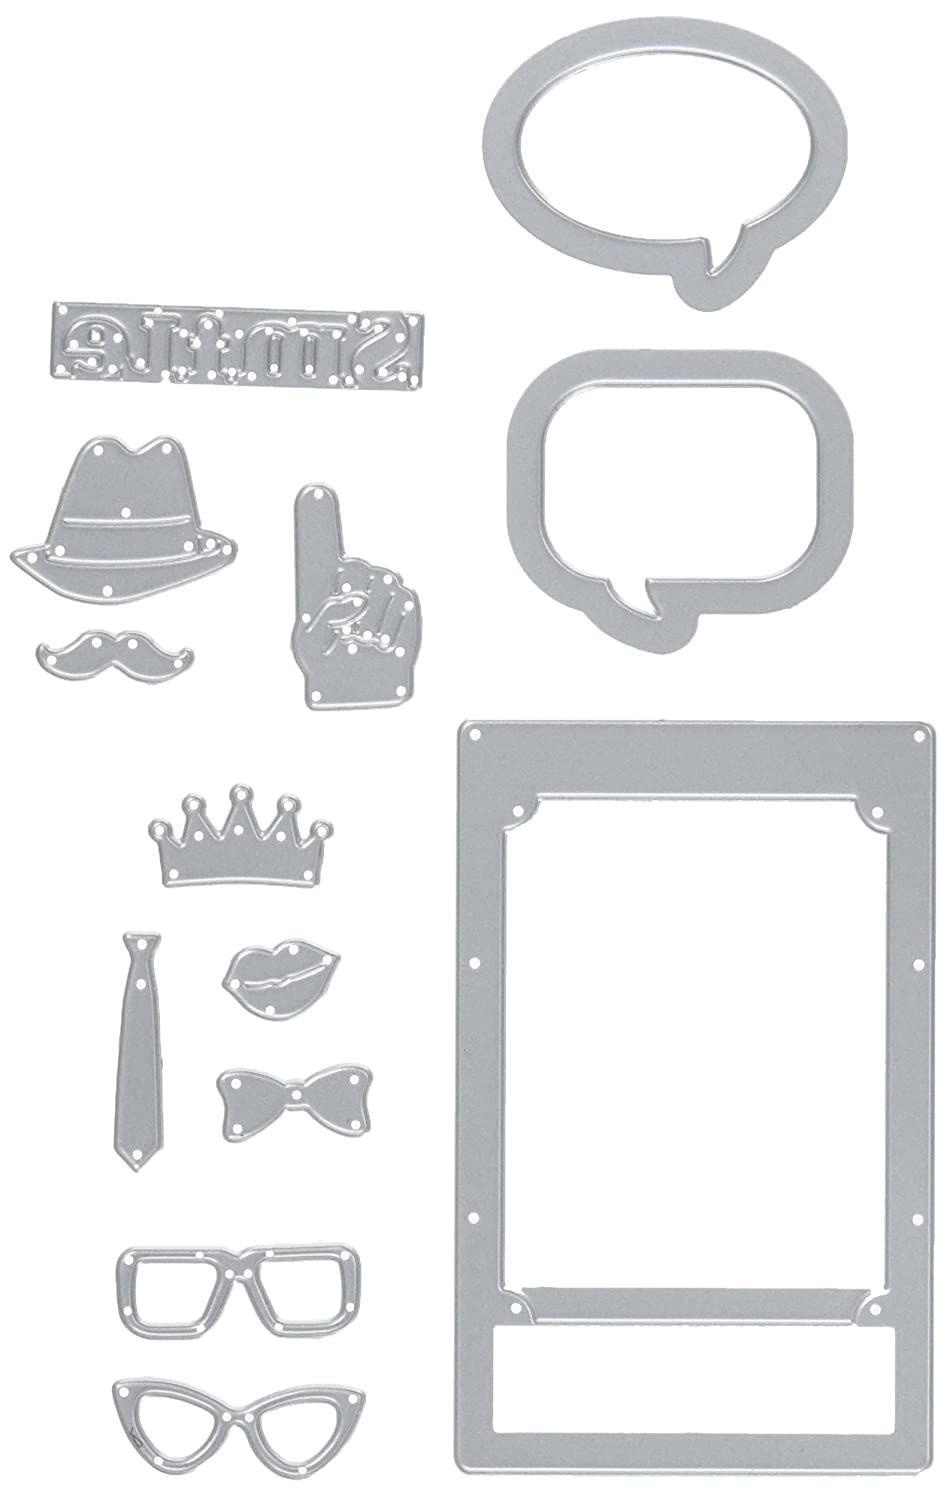 Sizzix 661400 Thinlits Die Set, Photo Frame and Props by Lynda Kanase (13-Pack)